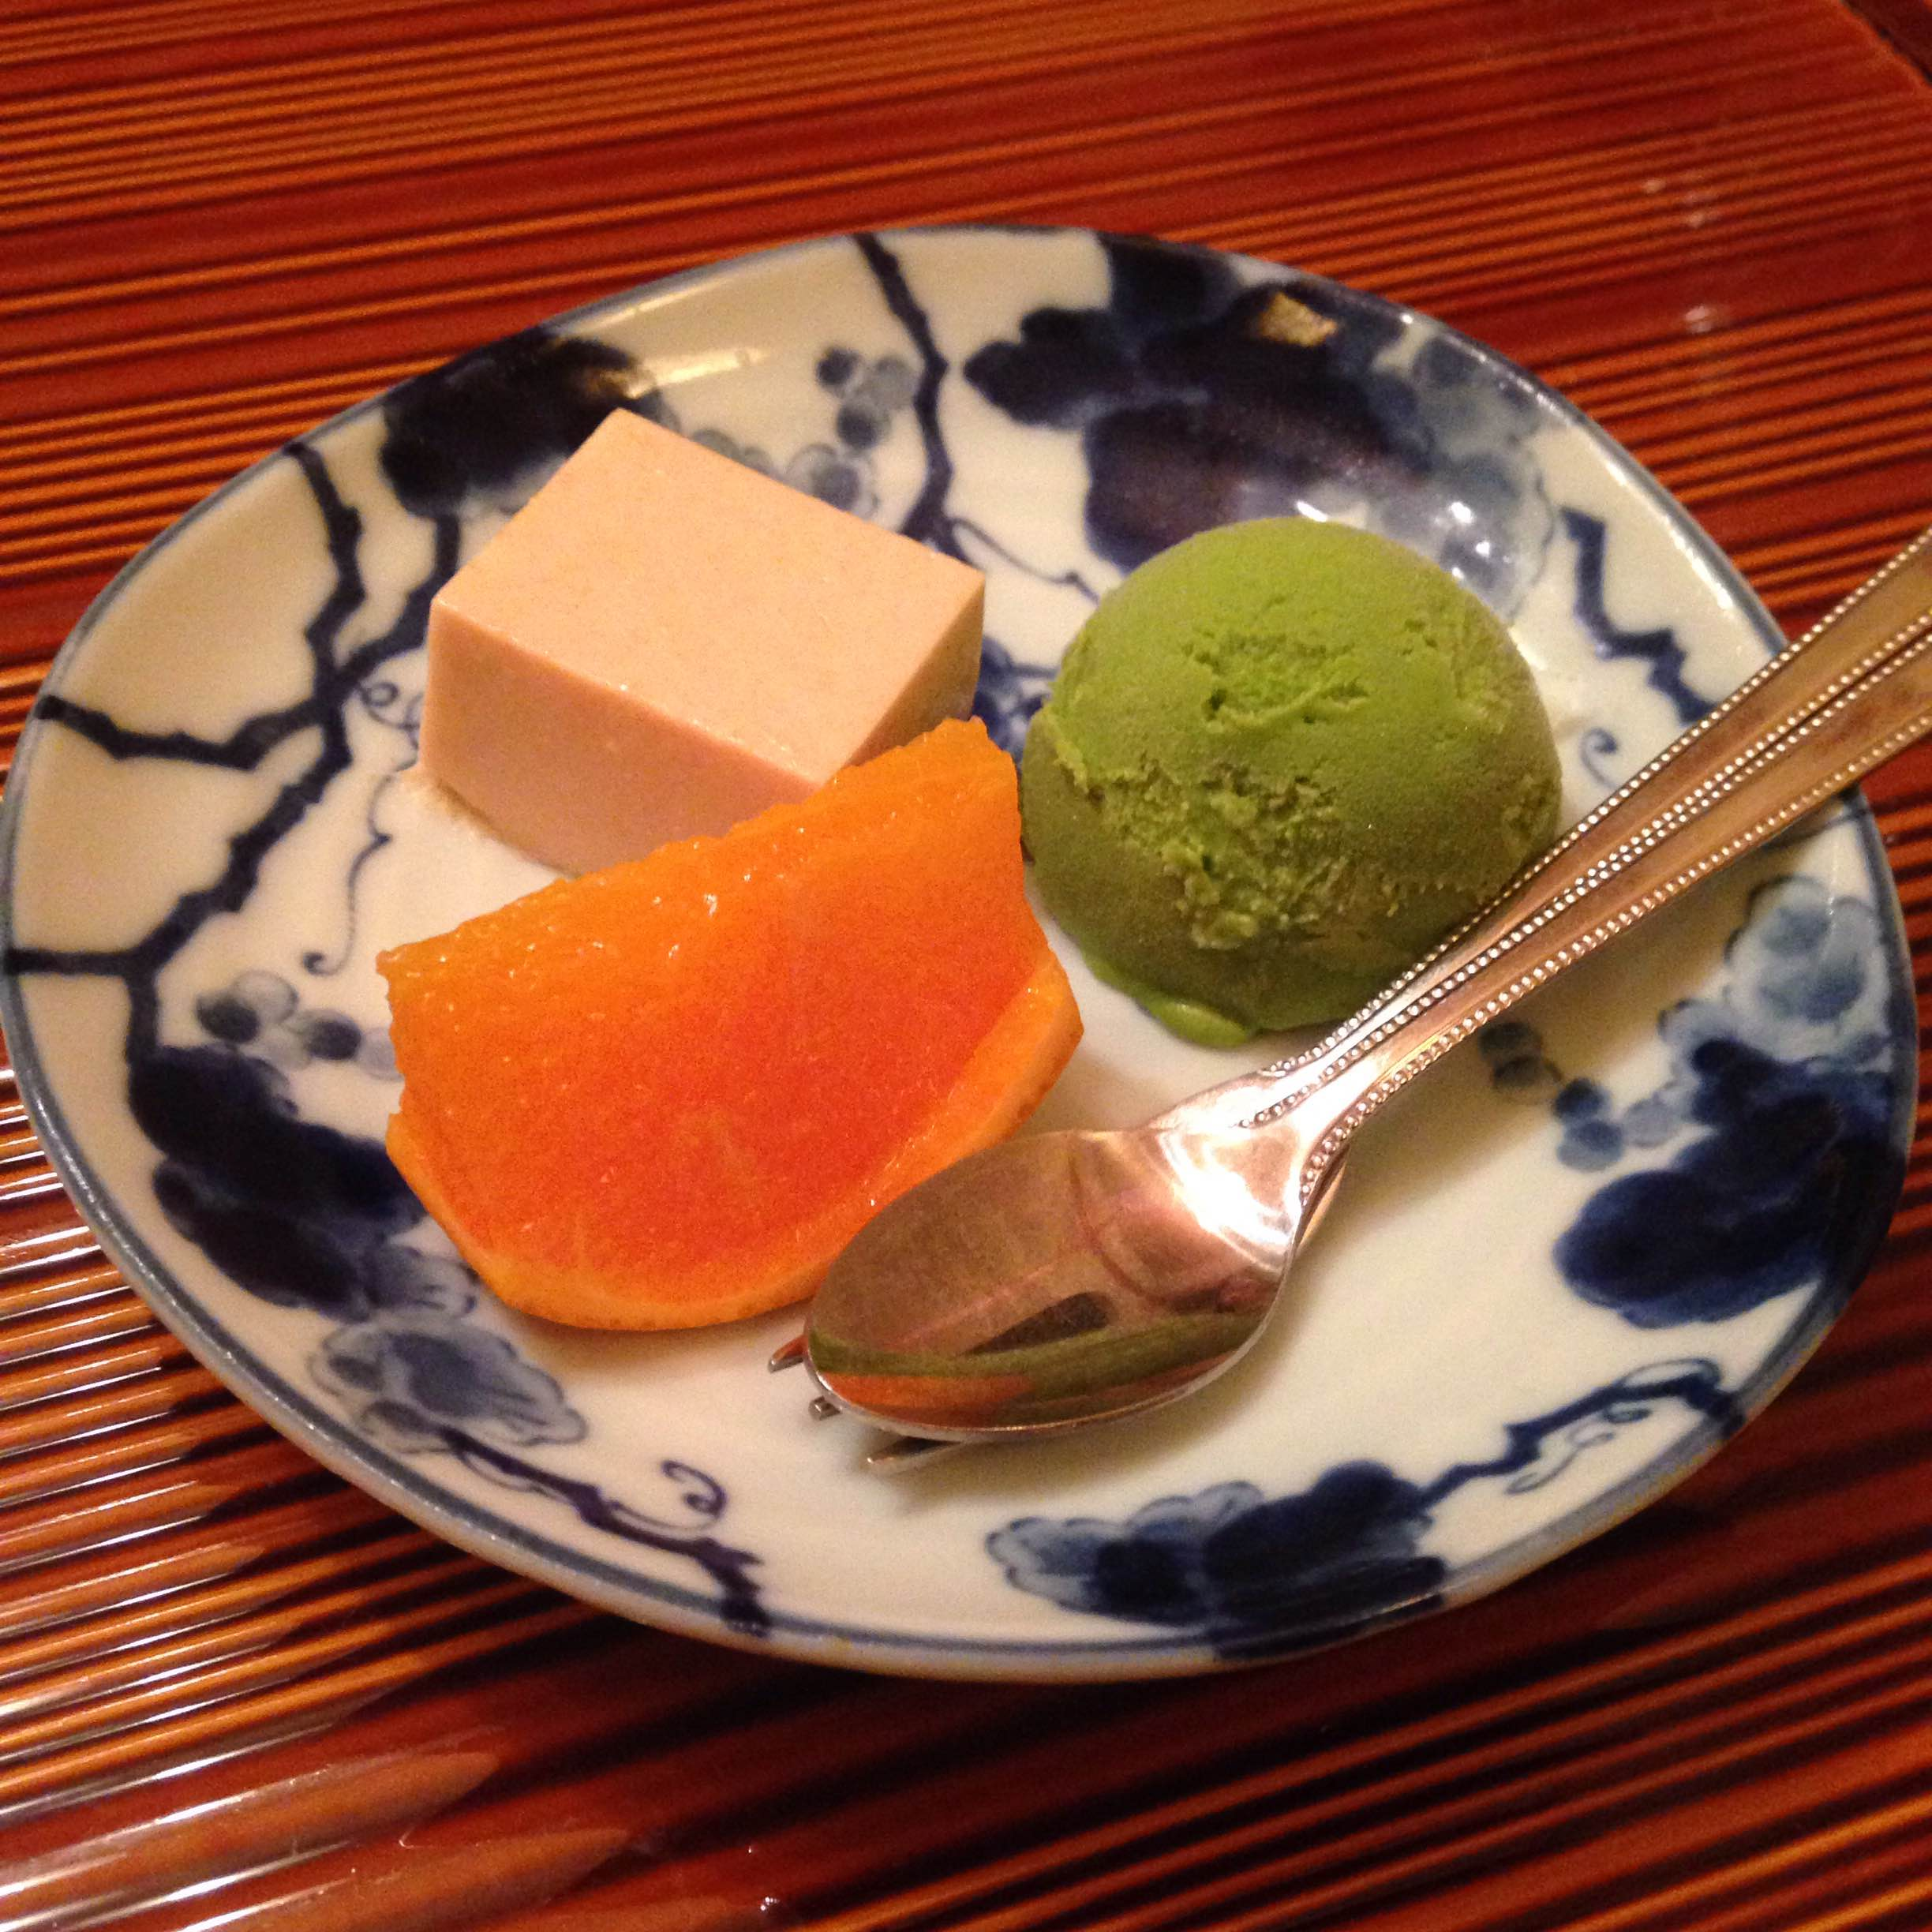 Desert! Green tea ice cream, fruit, chilled tofu